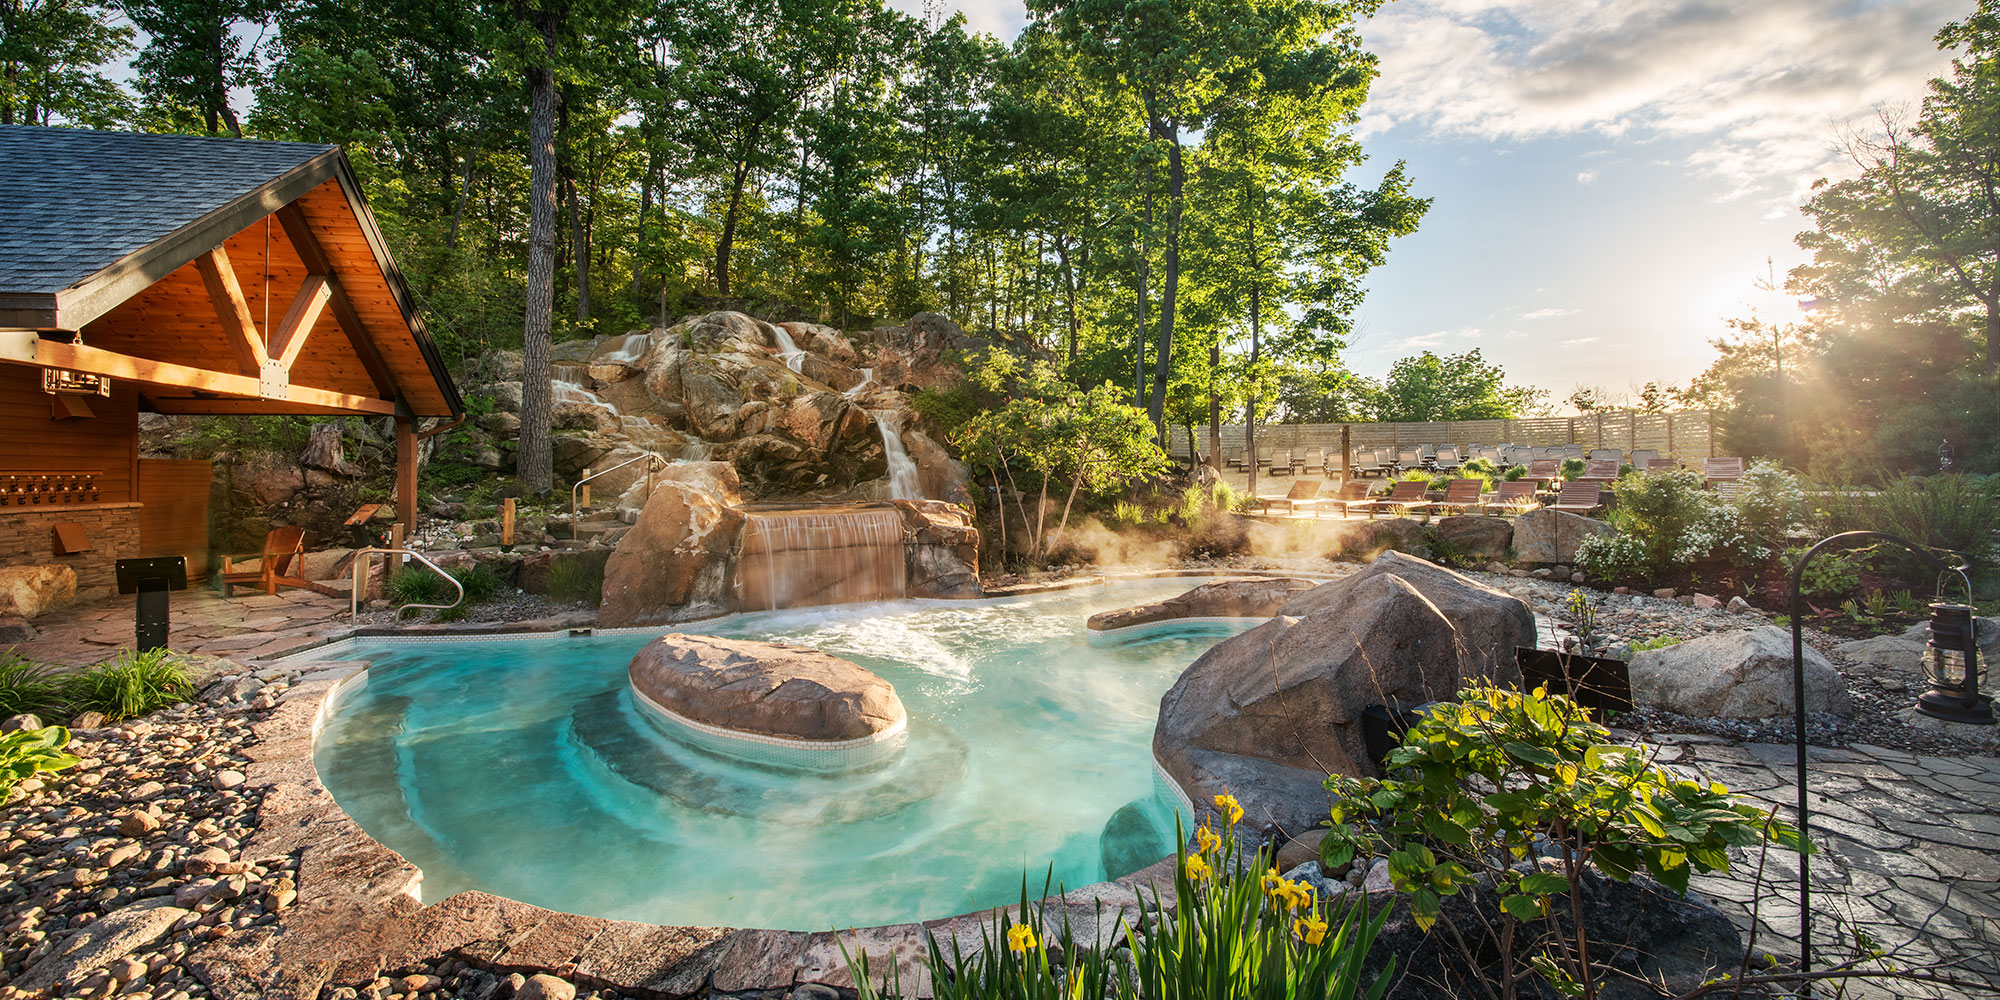 image tub construction by experts and curved with company hot improvement traditional waterfall natural deck patio living aquatic pool boulders home hardscape outdoor